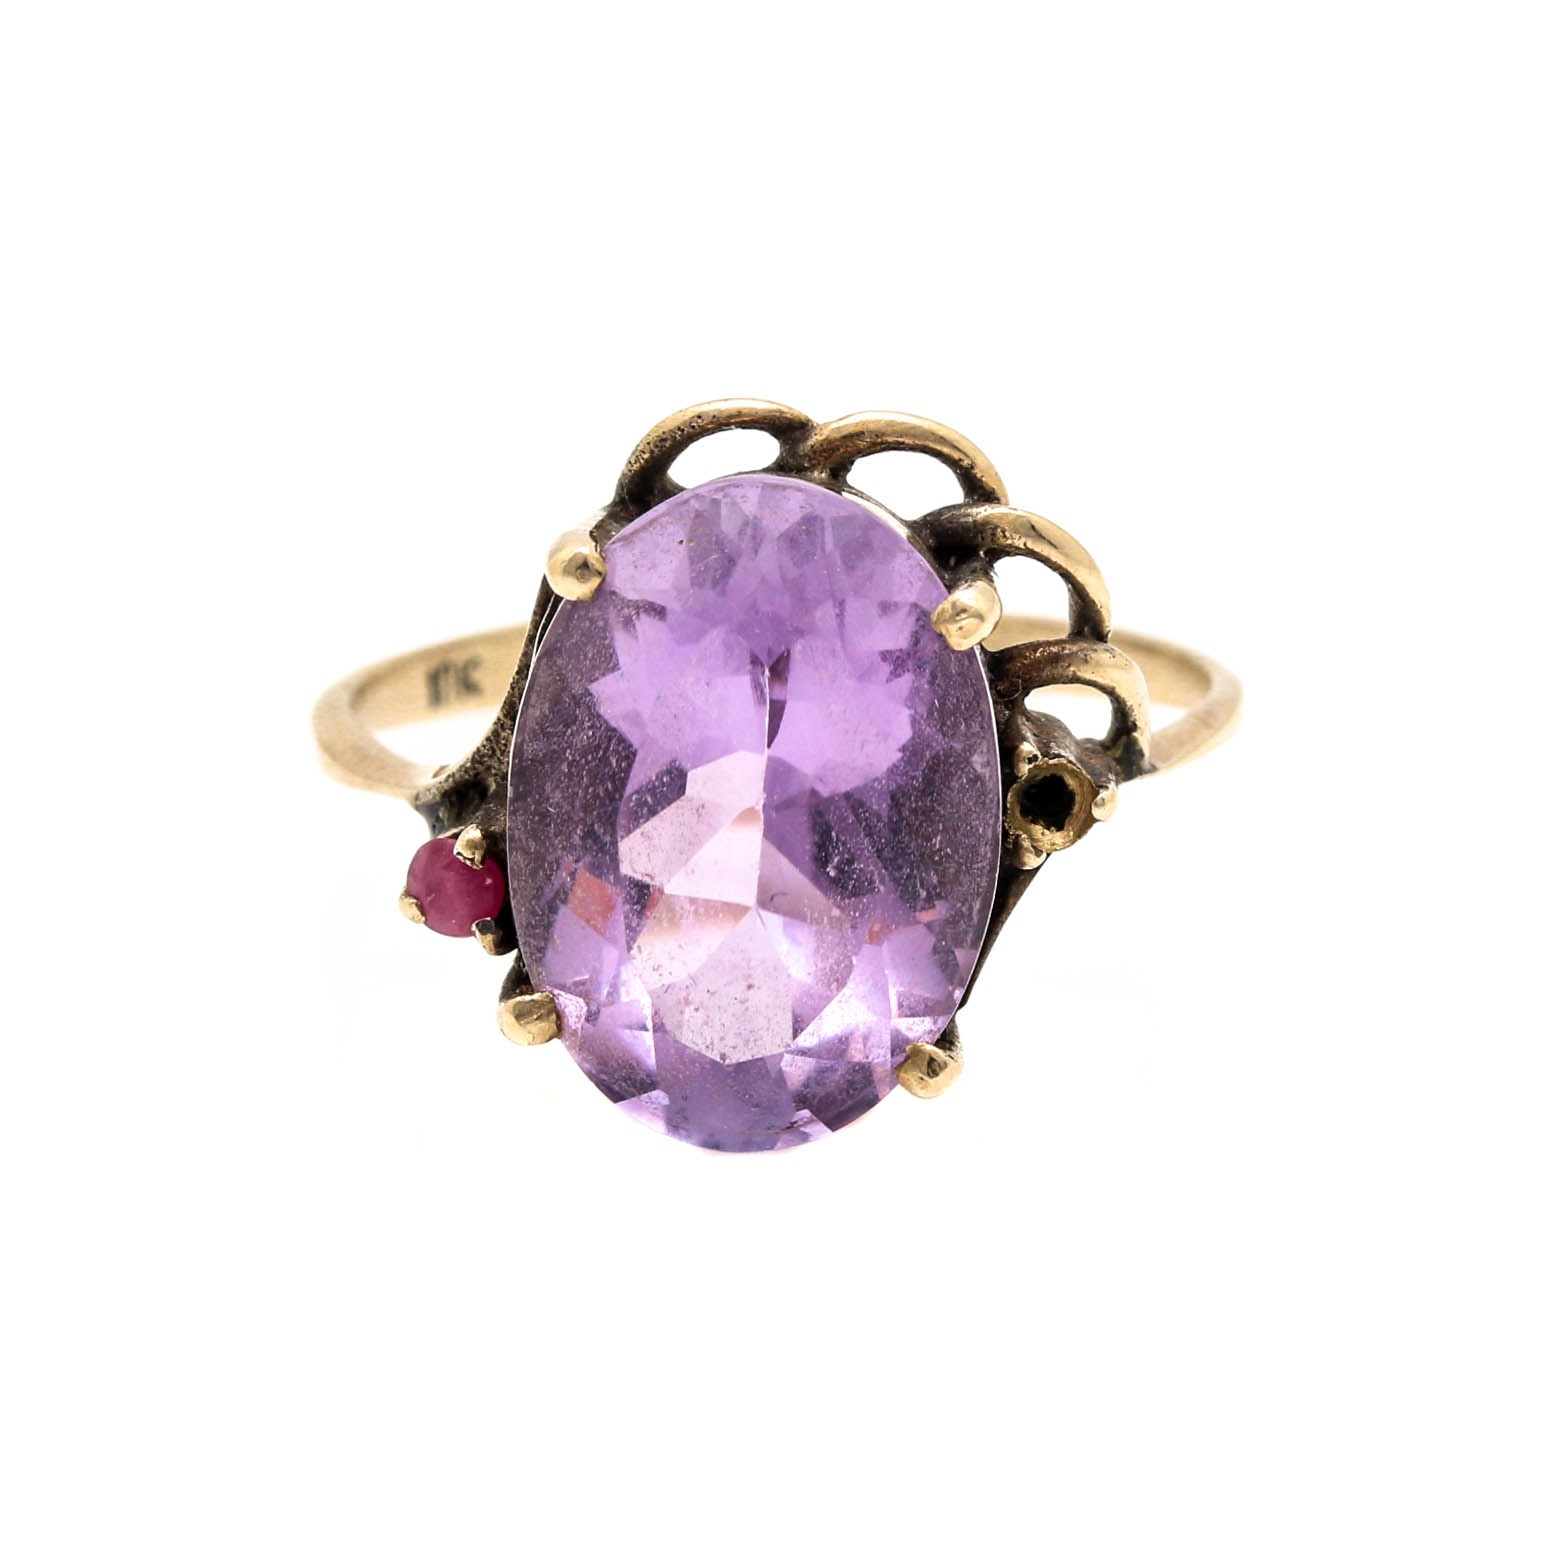 10K Yellow Gold Amethyst and Ruby Ring